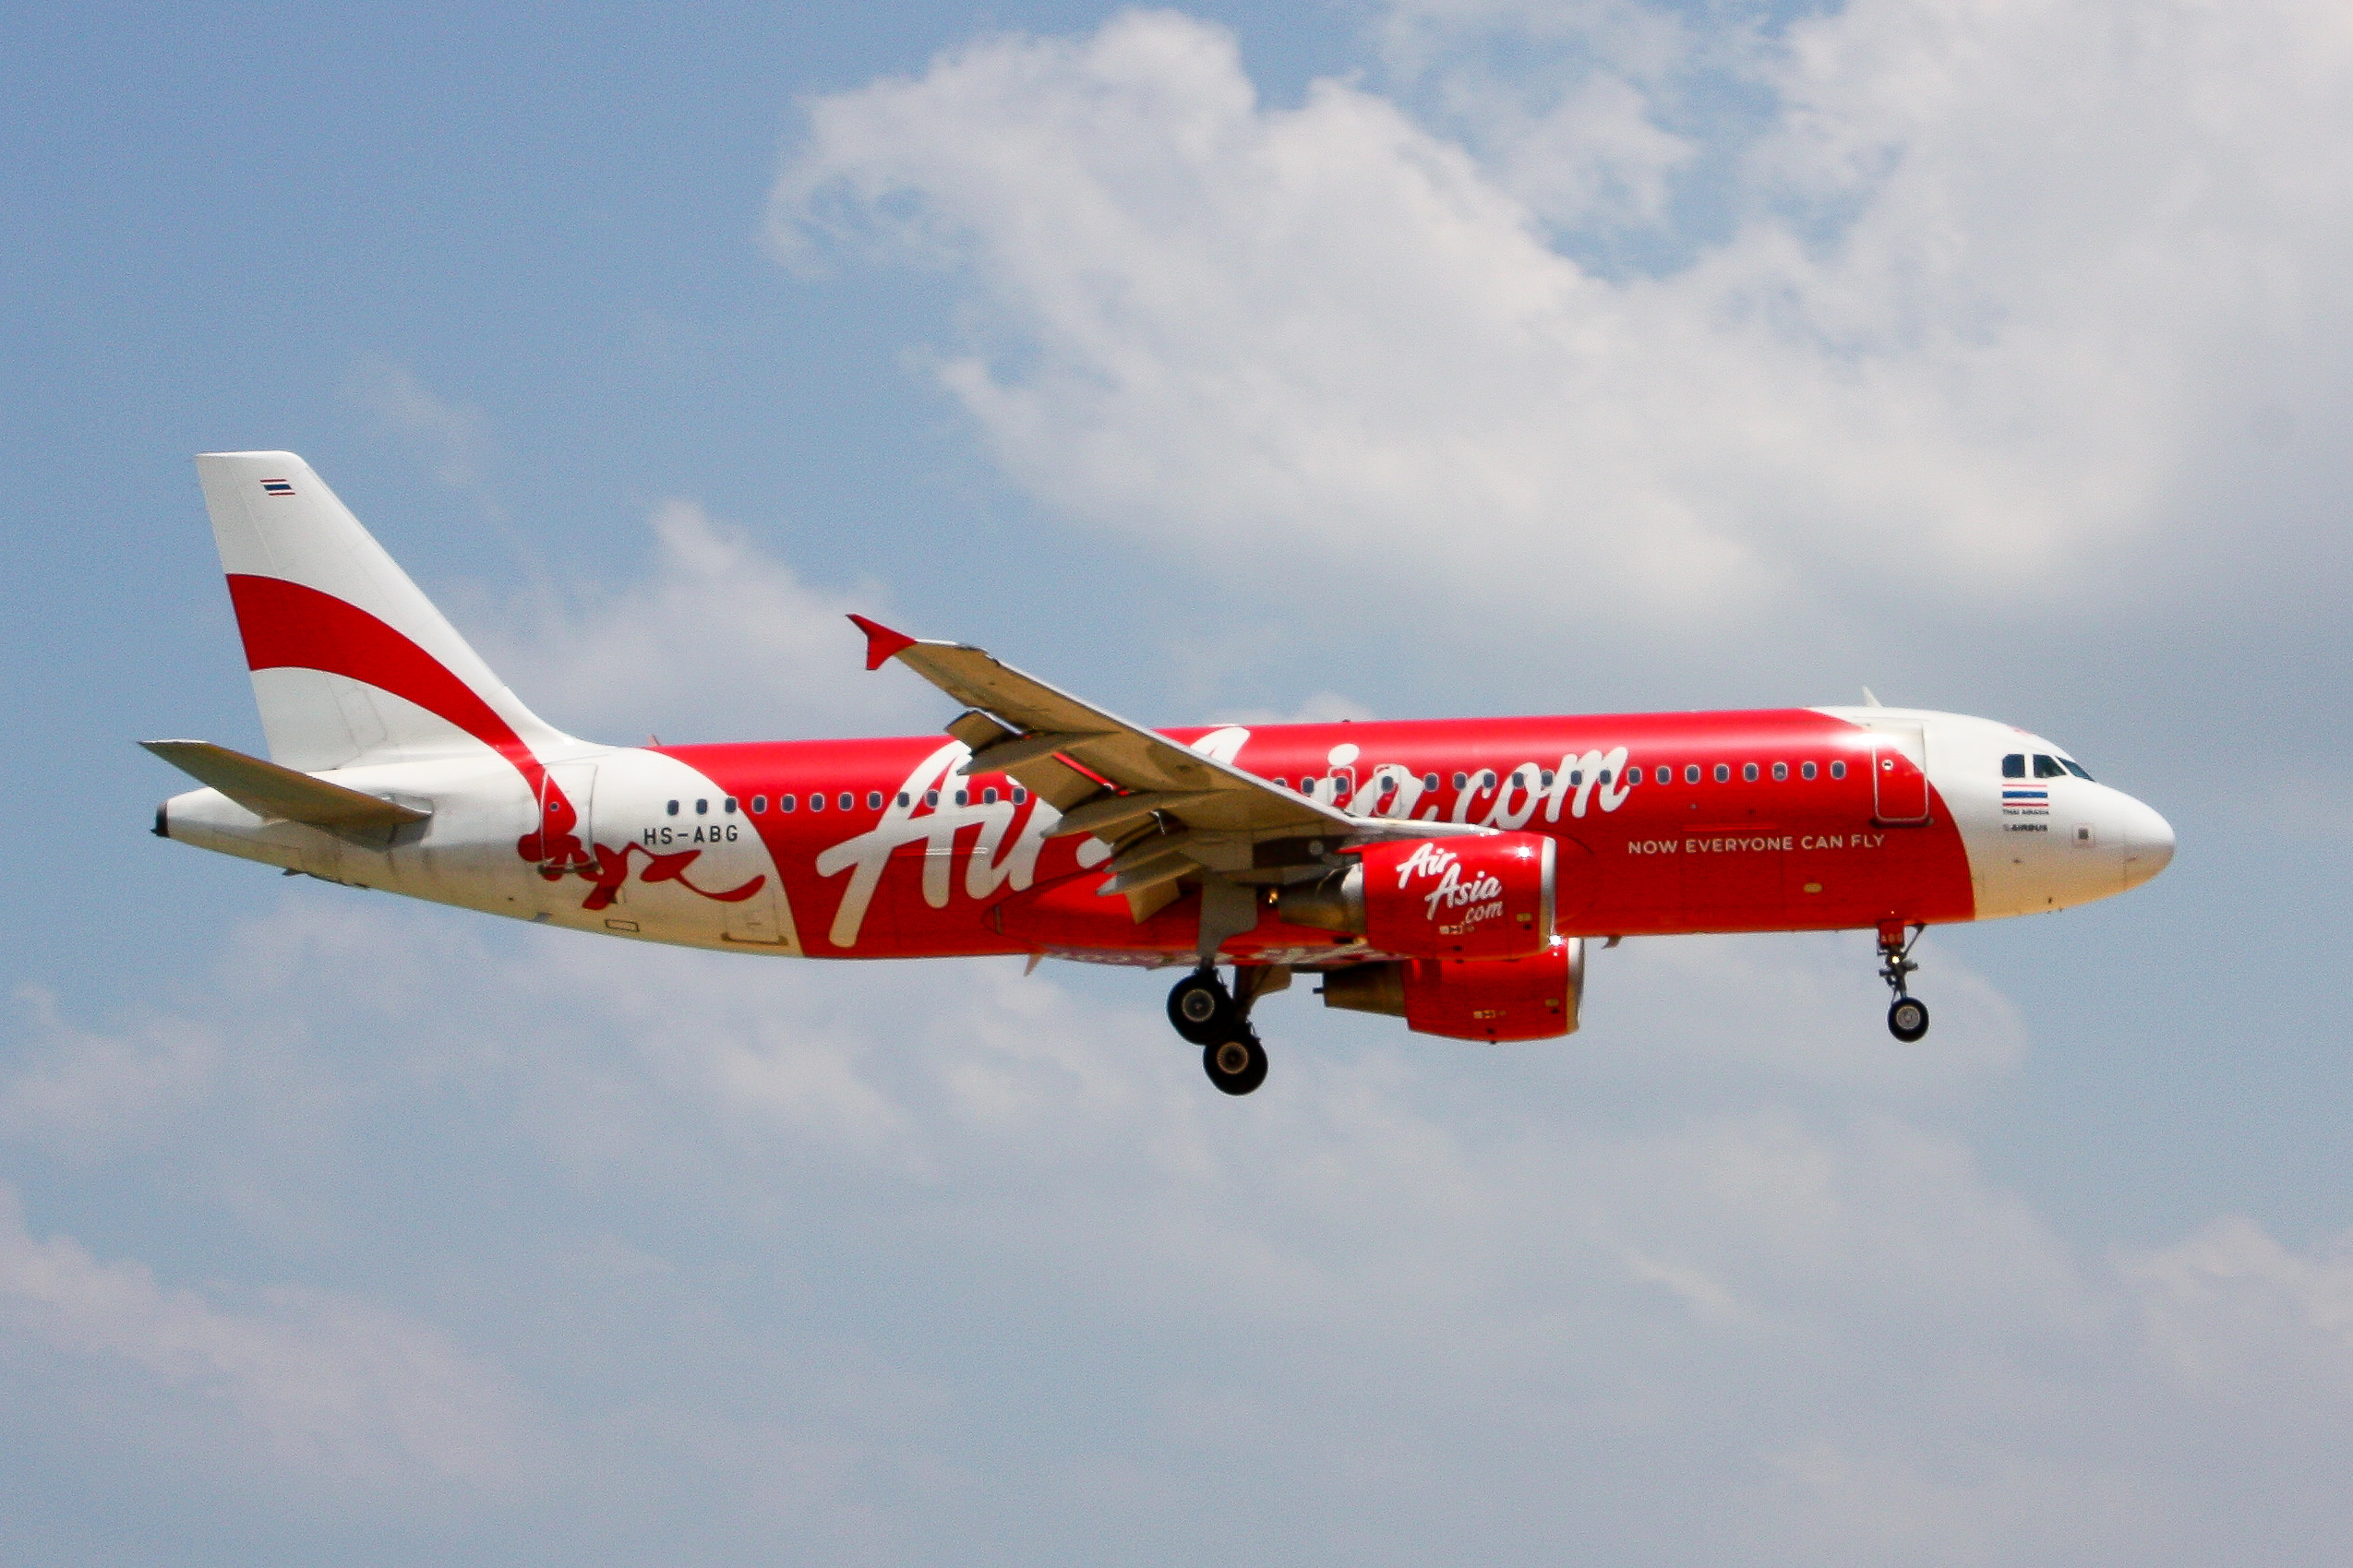 Man Proposes To Girlfriend While Plane Plummets 20,000 Feet Towards Ground Thai AirAsia A320 HS ABG